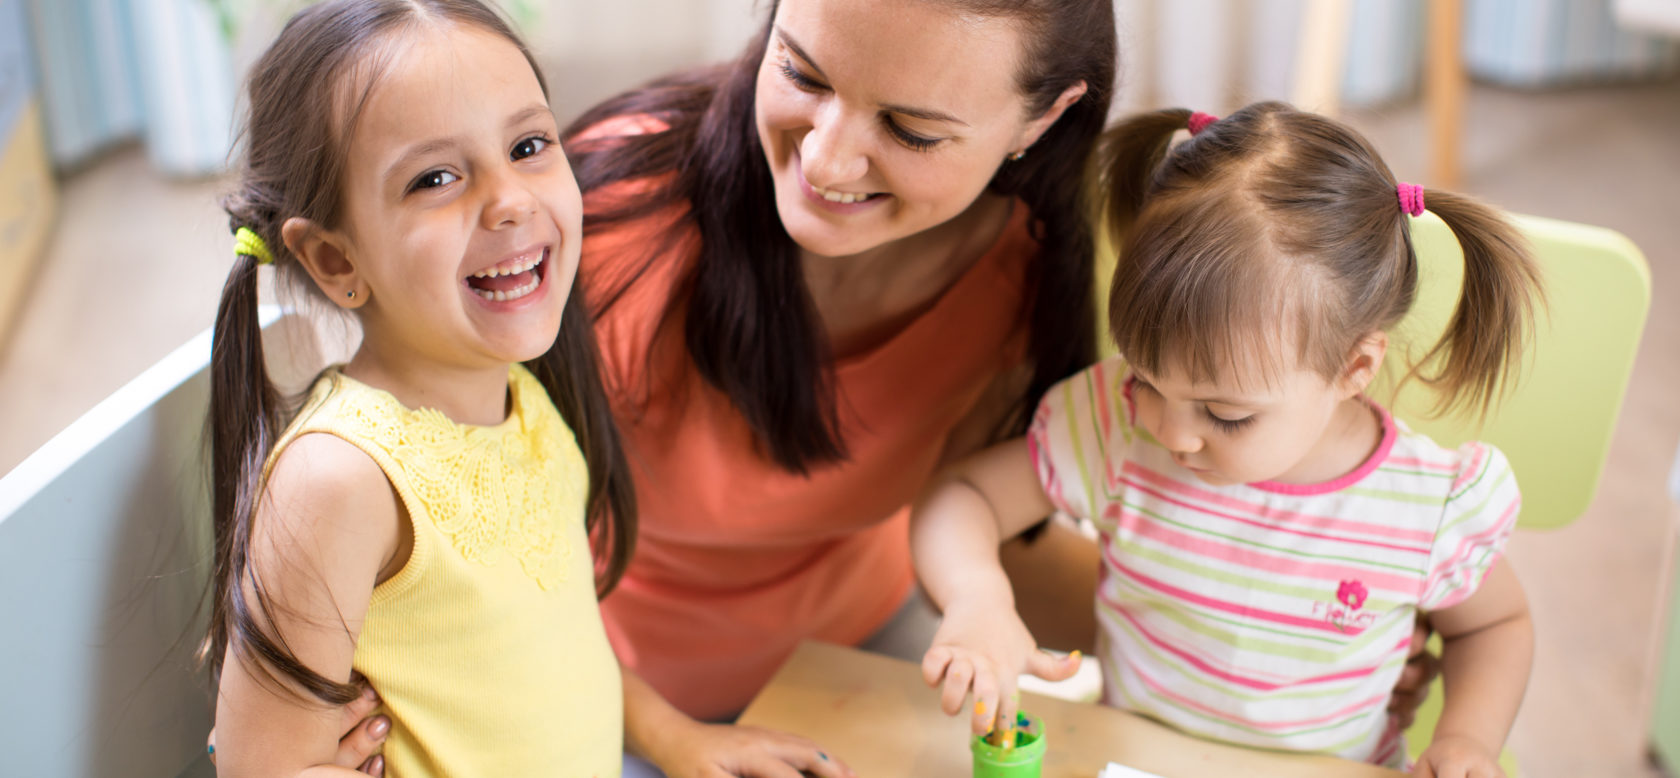 5 Worthwhile Activities Parents Should Hire A Babysitter